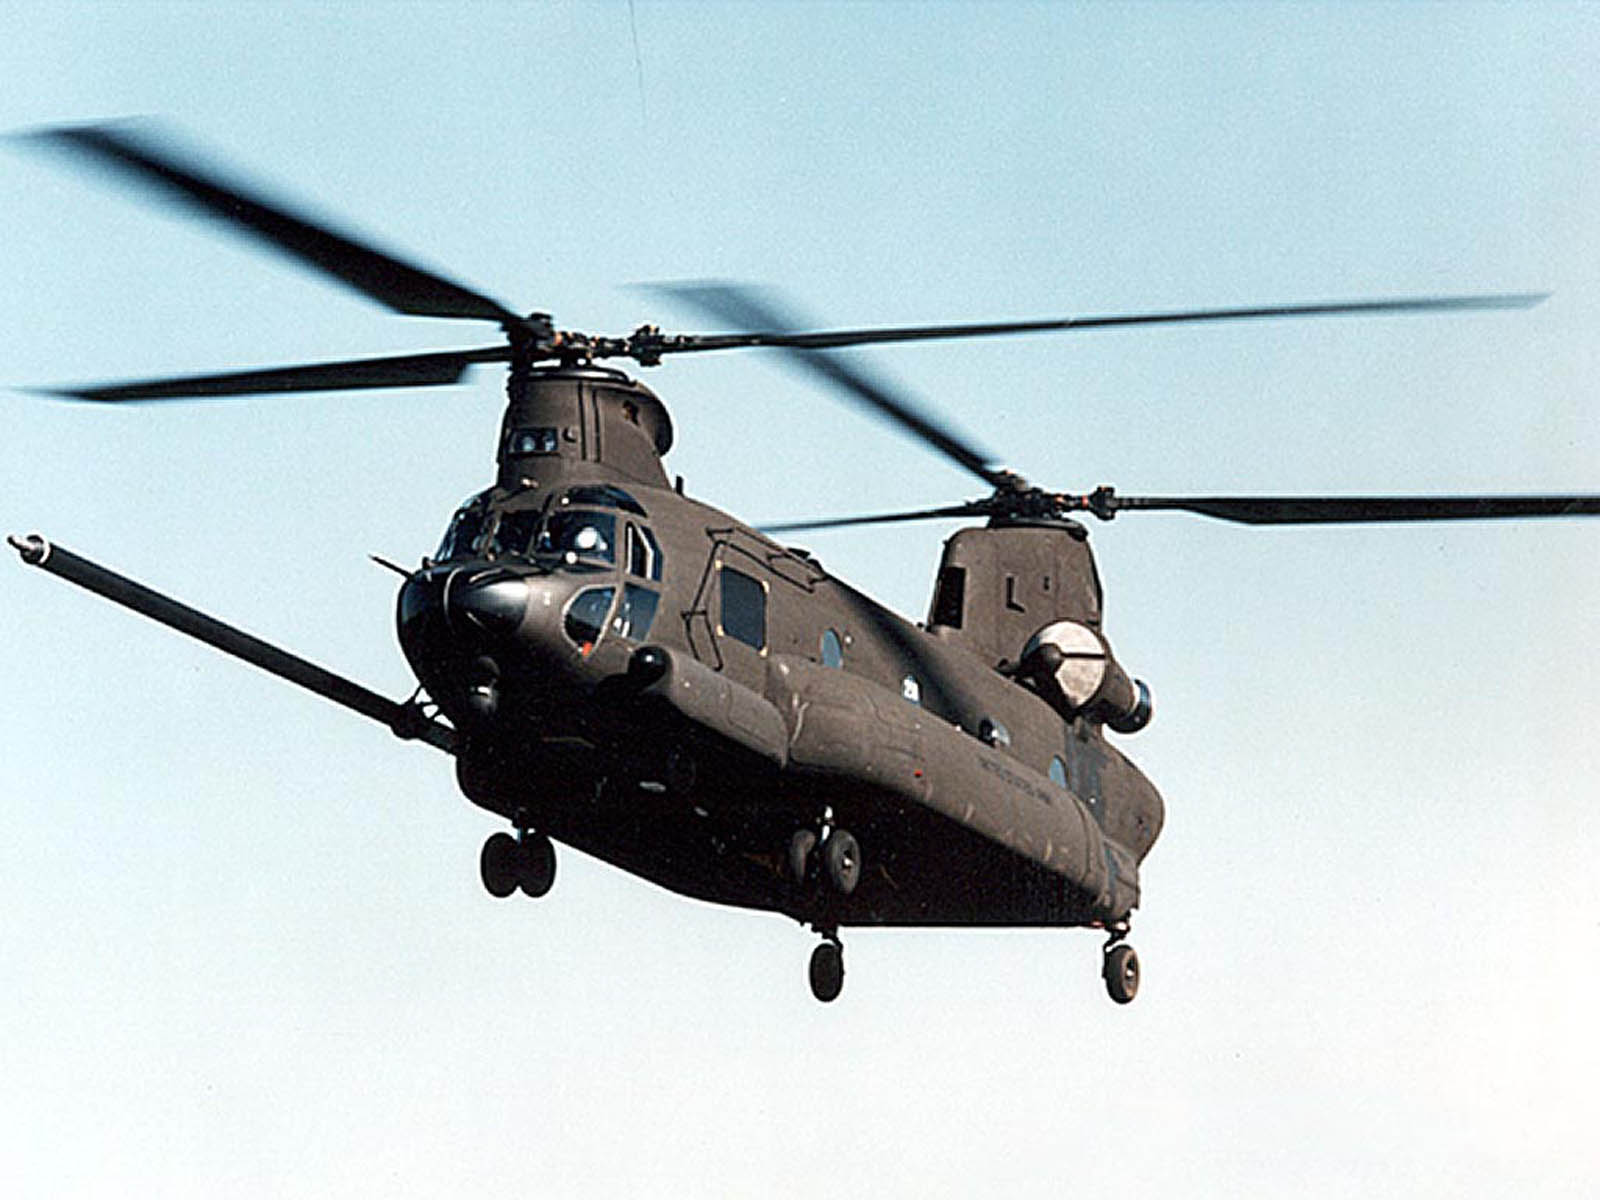 Military Helicopter Wallpapers Military Helicopter Desktop Wallpapers 1600x1200